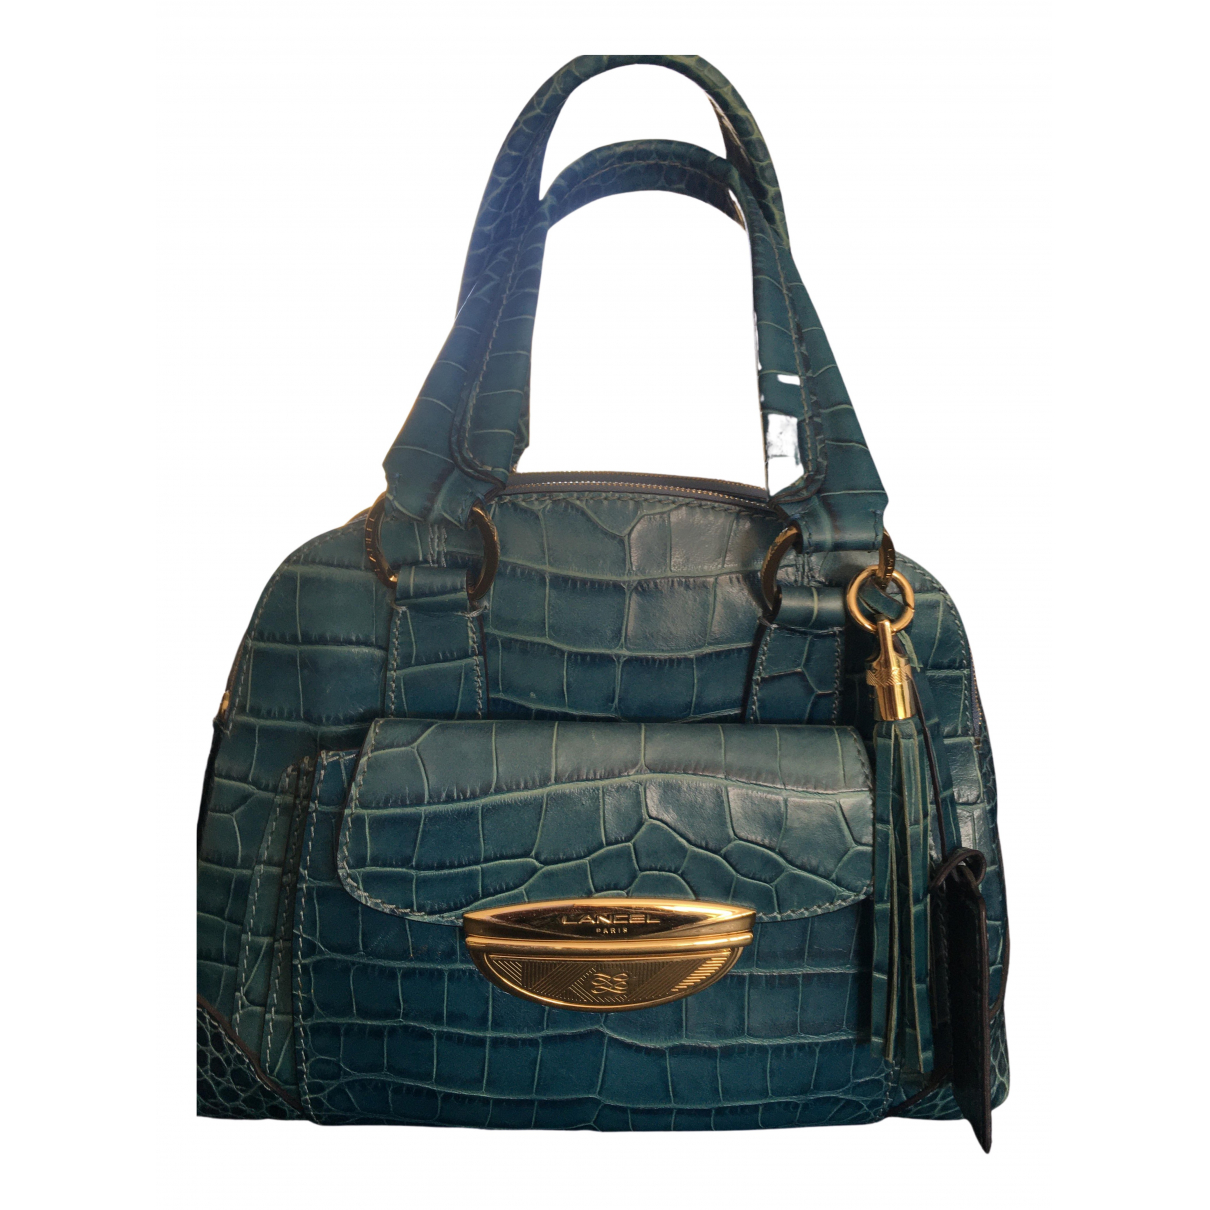 Lancel Adjani Blue Patent leather handbag for Women \N